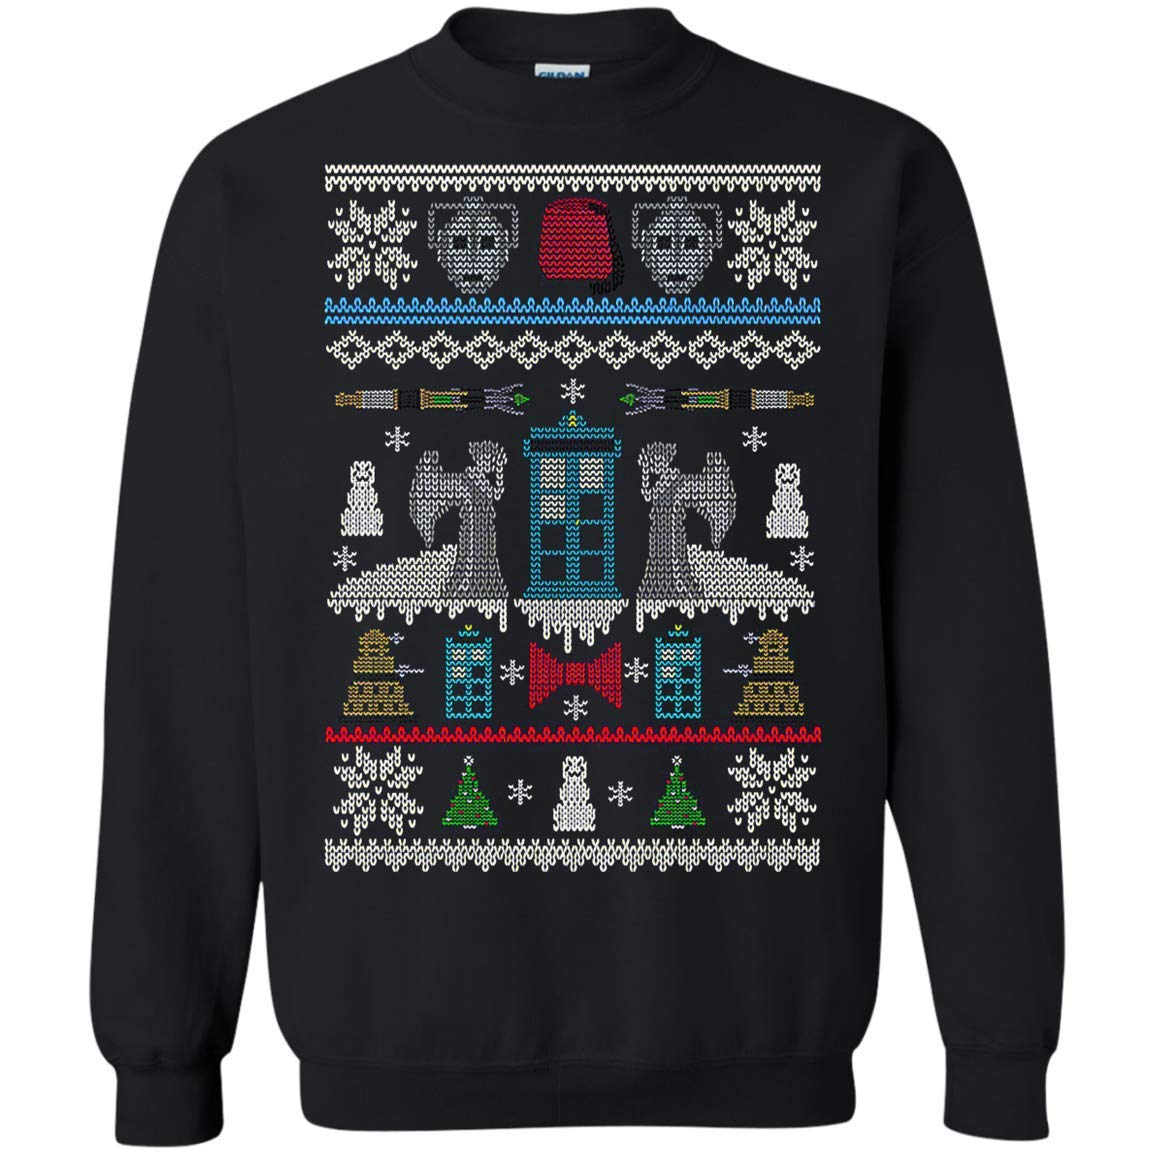 Whos Sweater is This Doctor Who Ugly Sweater Perfect Christas Gifts Crewneck Pullover Sweatshirt